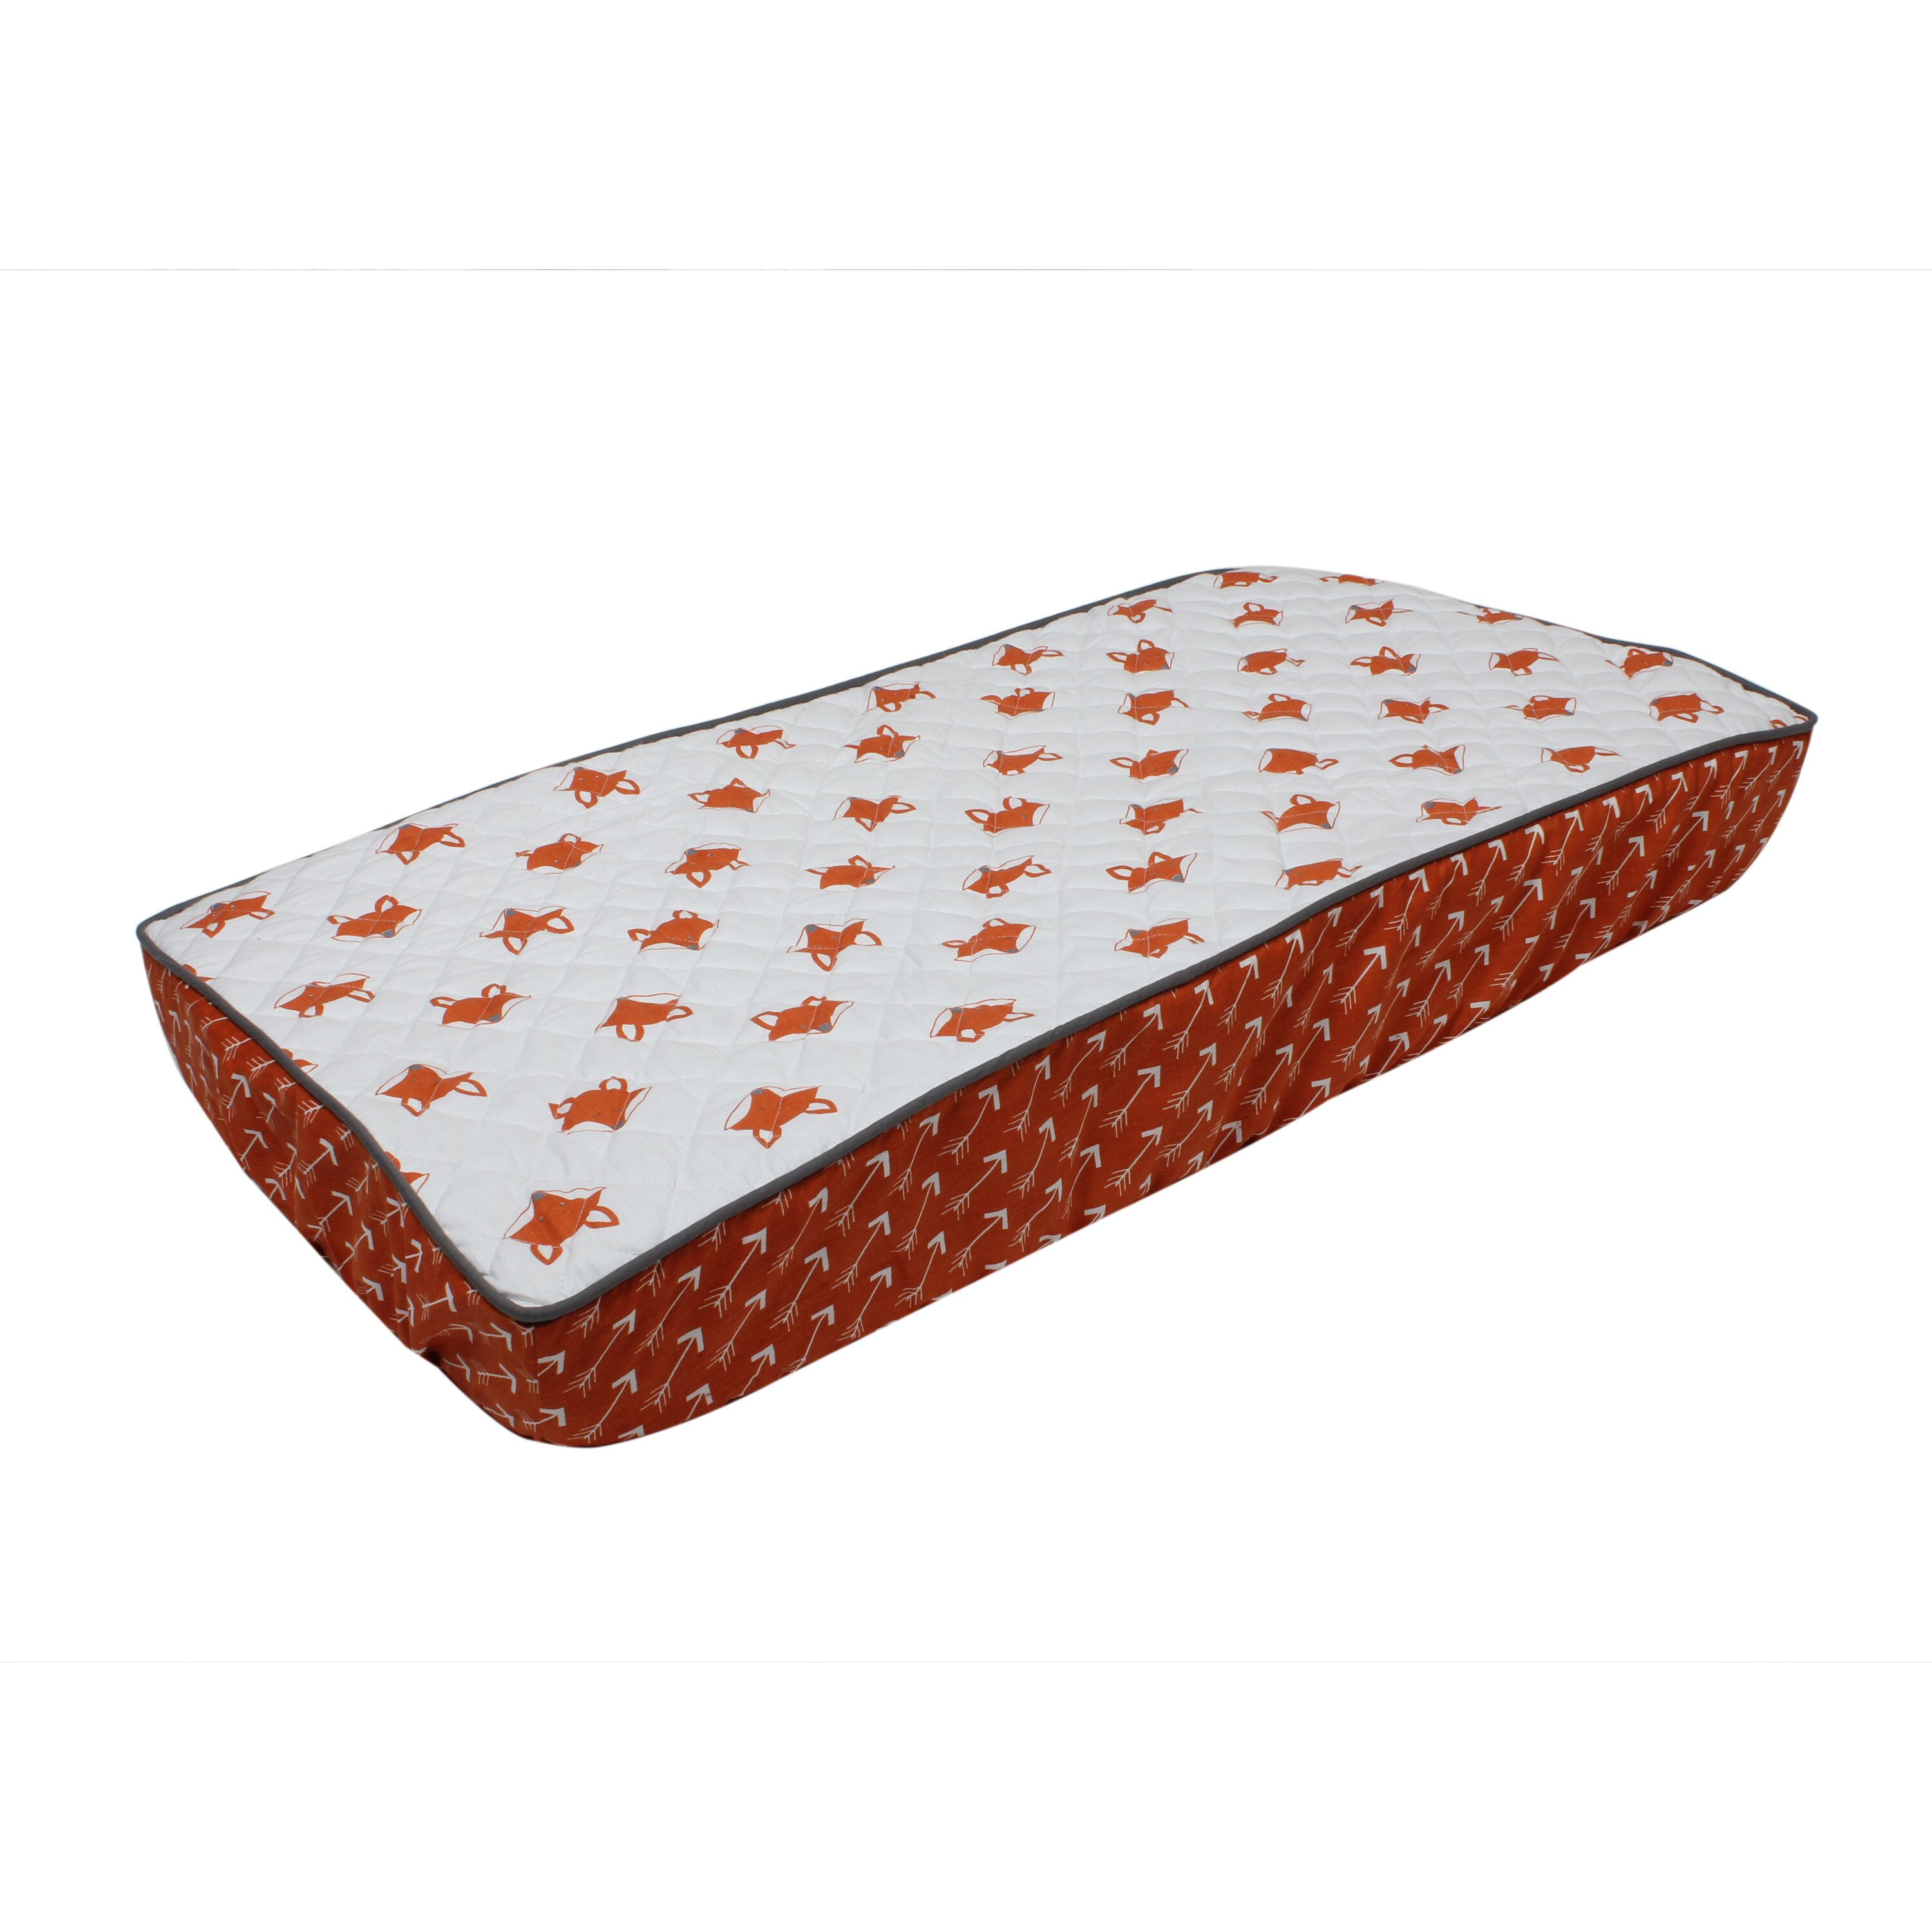 Bacati Playful Fox Quilted Changing Pad Cover amp Reviews  : Bacati Playful Fox Quilted Changing Pad Cover from www.wayfair.ca size 3000 x 3000 jpeg 662kB